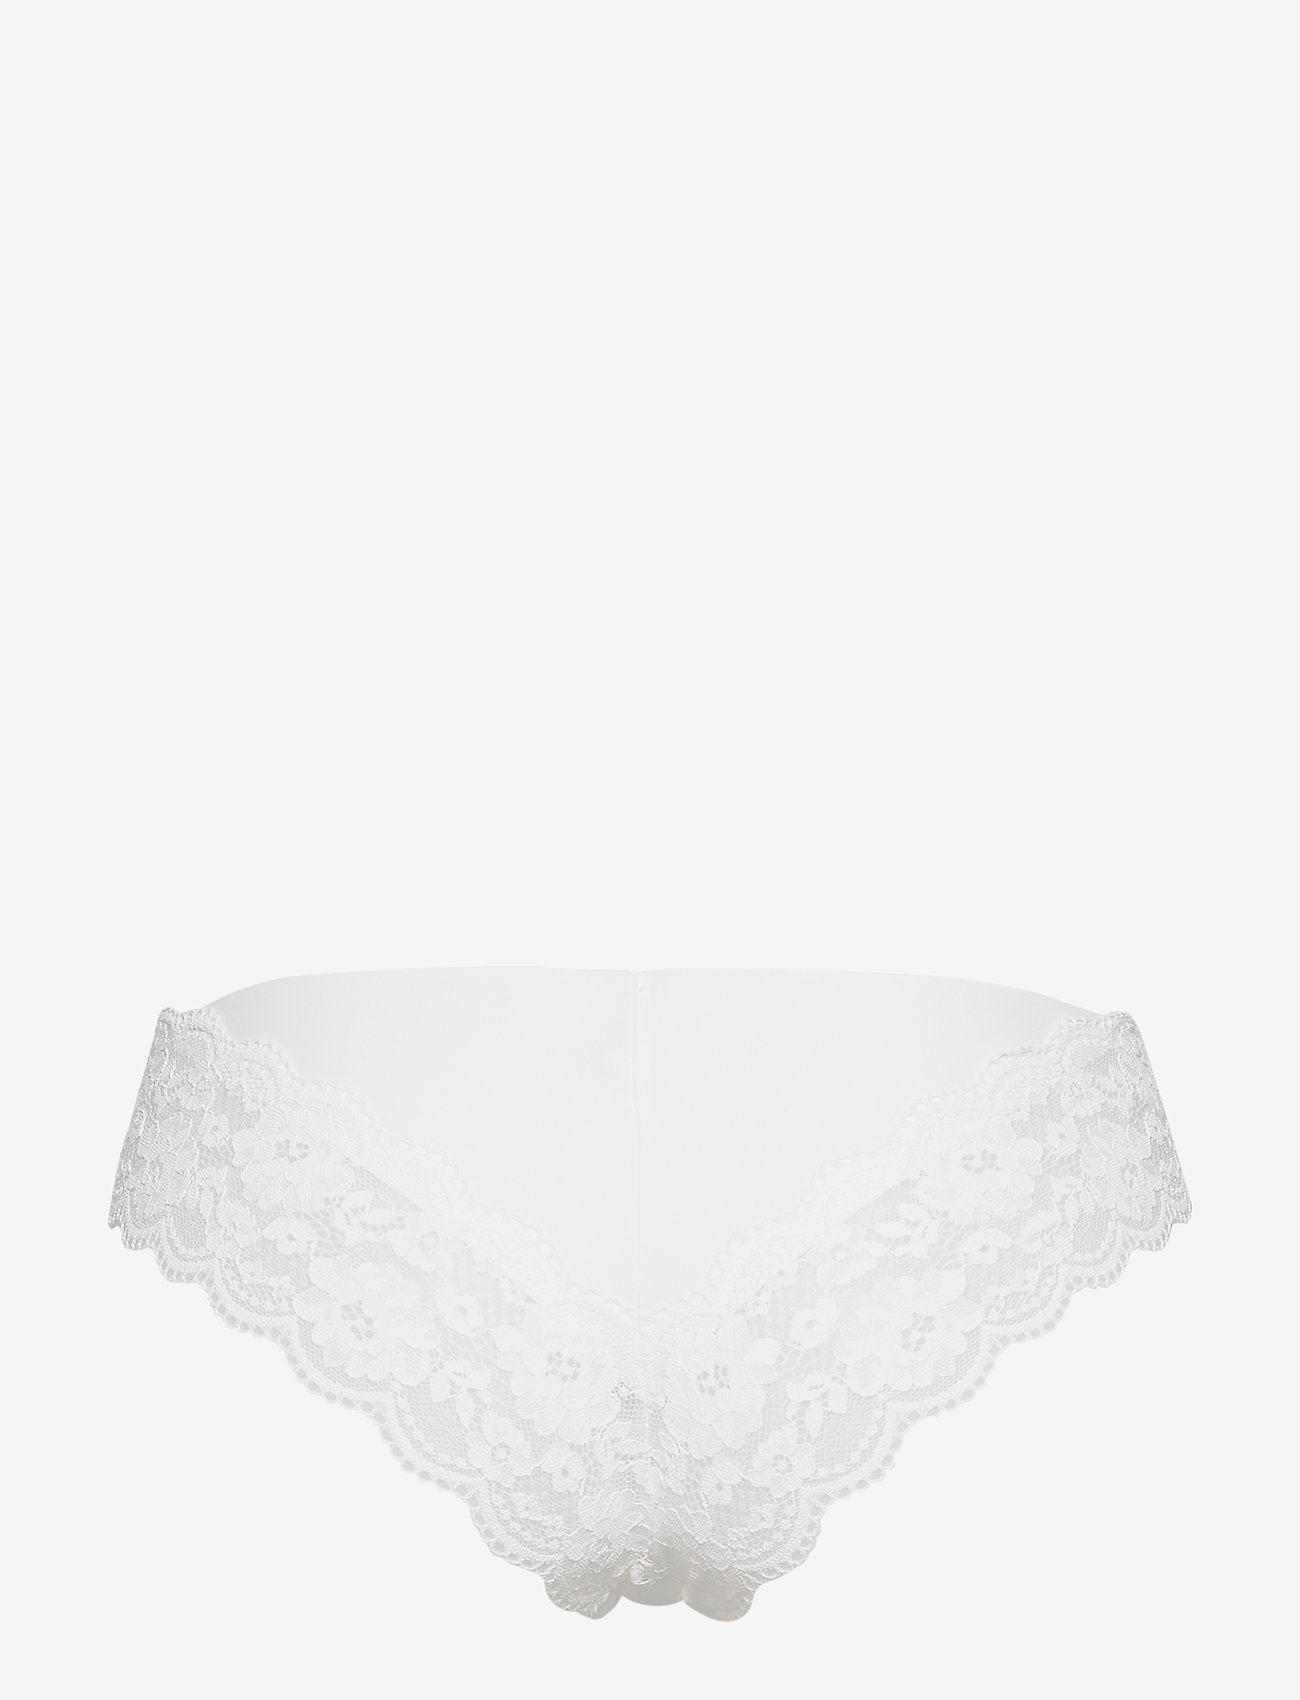 Brief Brazilian Reg Invisible (White) - Lindex xIiJJ5